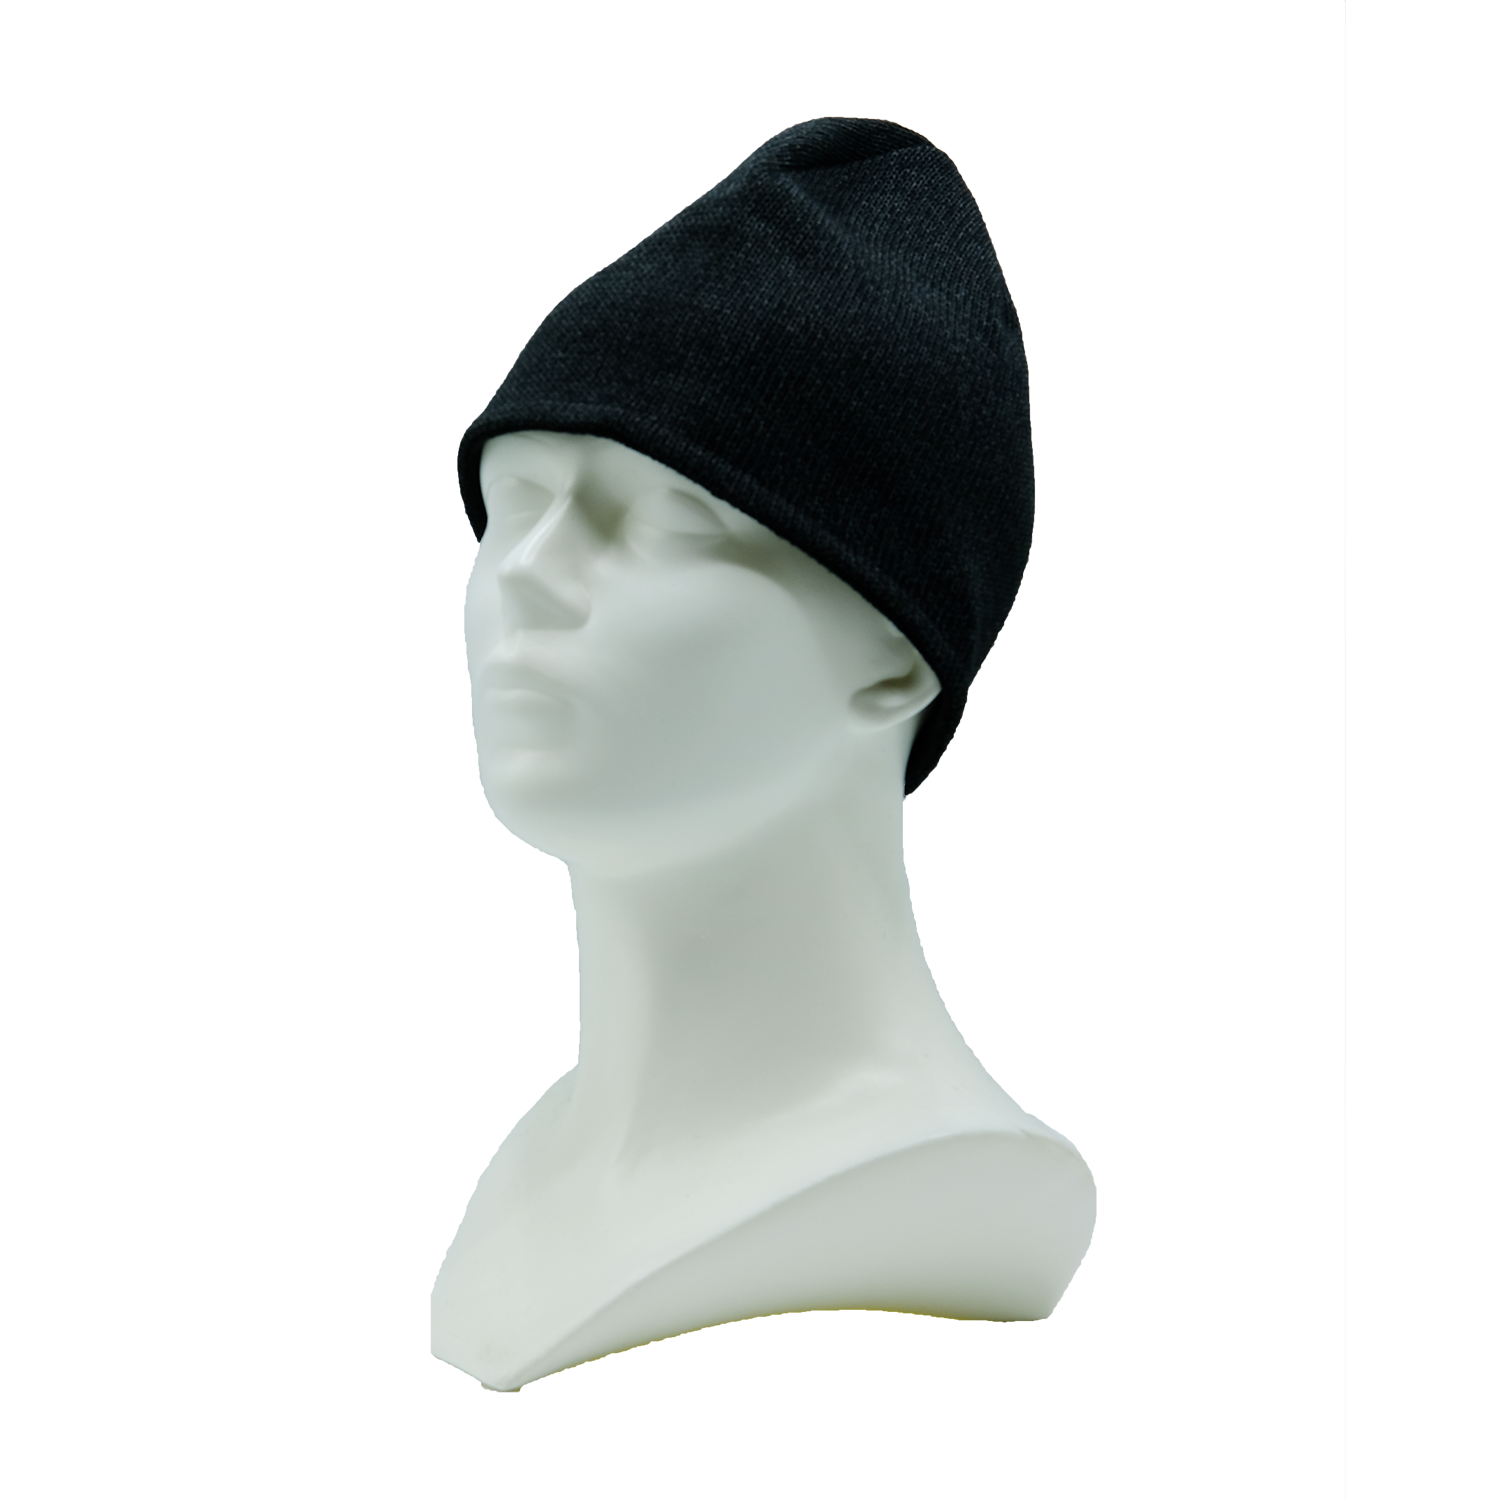 Tailor made Reflecting Beanies